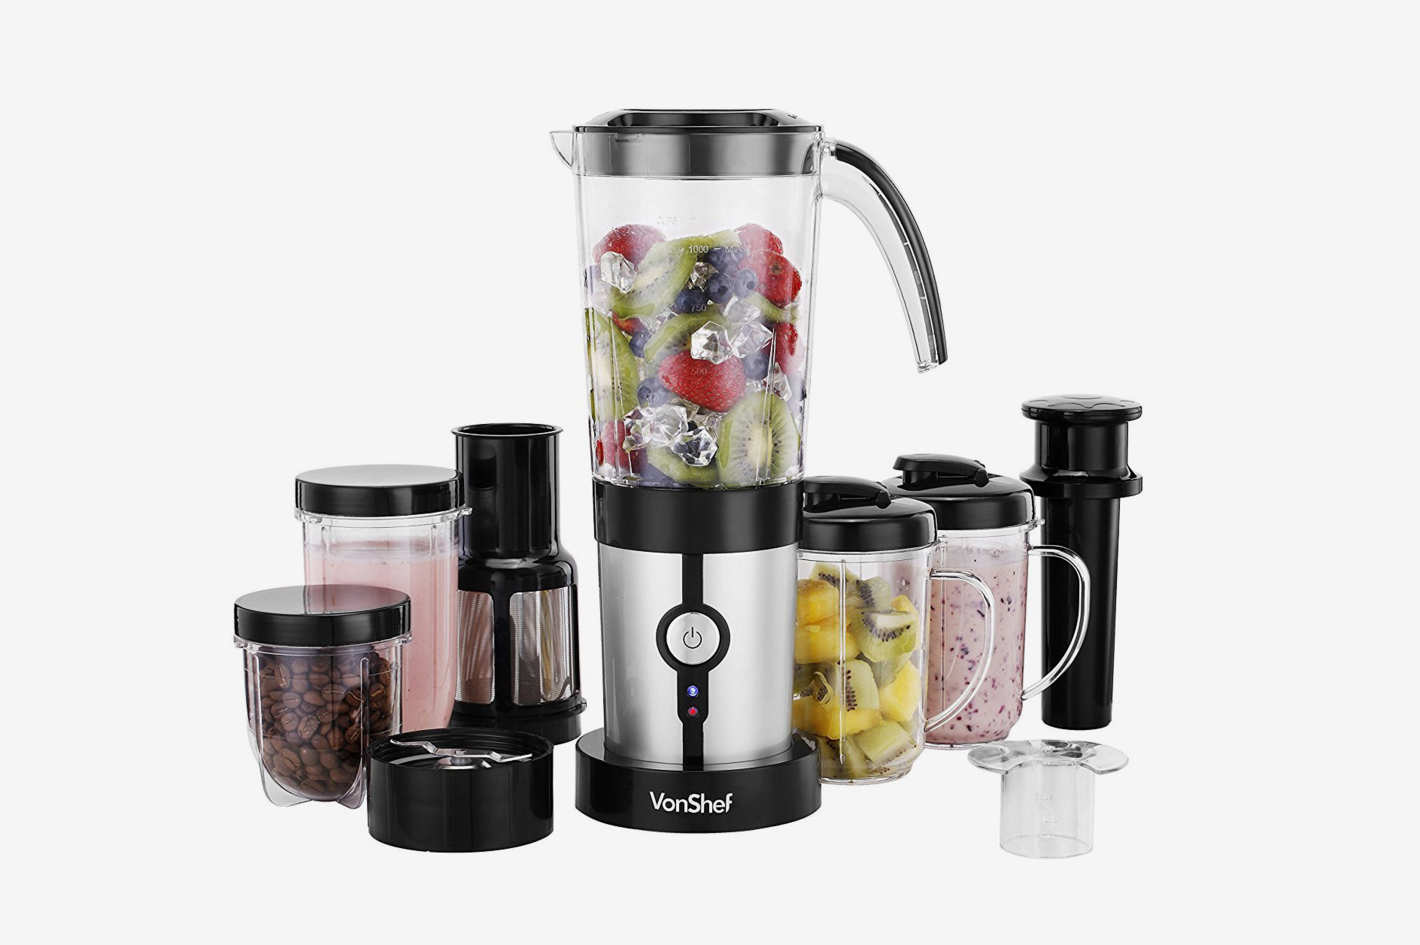 VonShef 1 Speed Blender Black